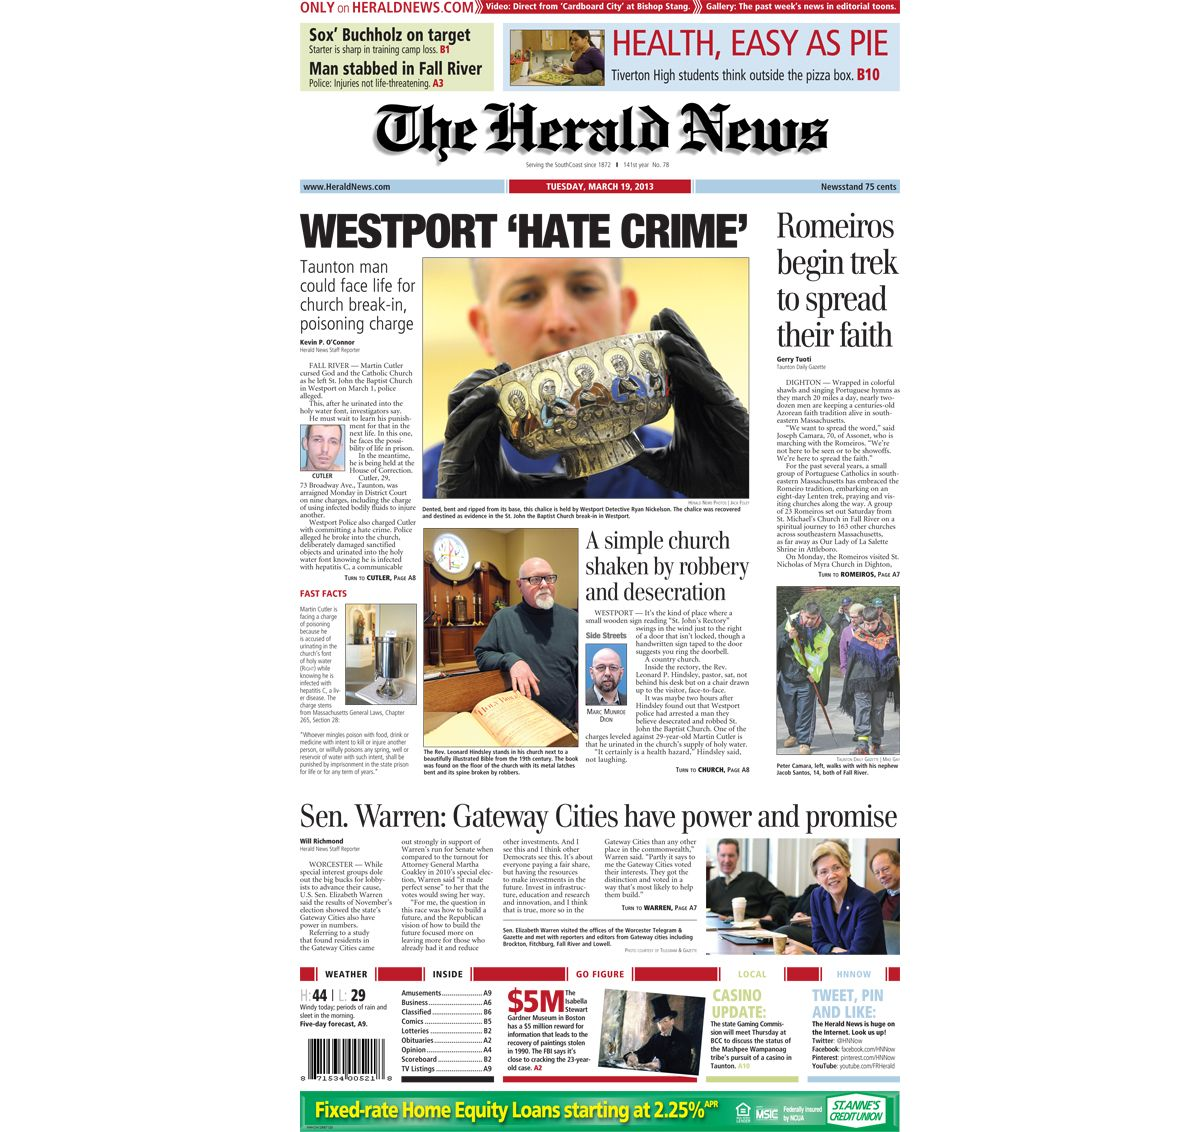 The #frontpage of The Herald News for Tuesday, March 6, 6